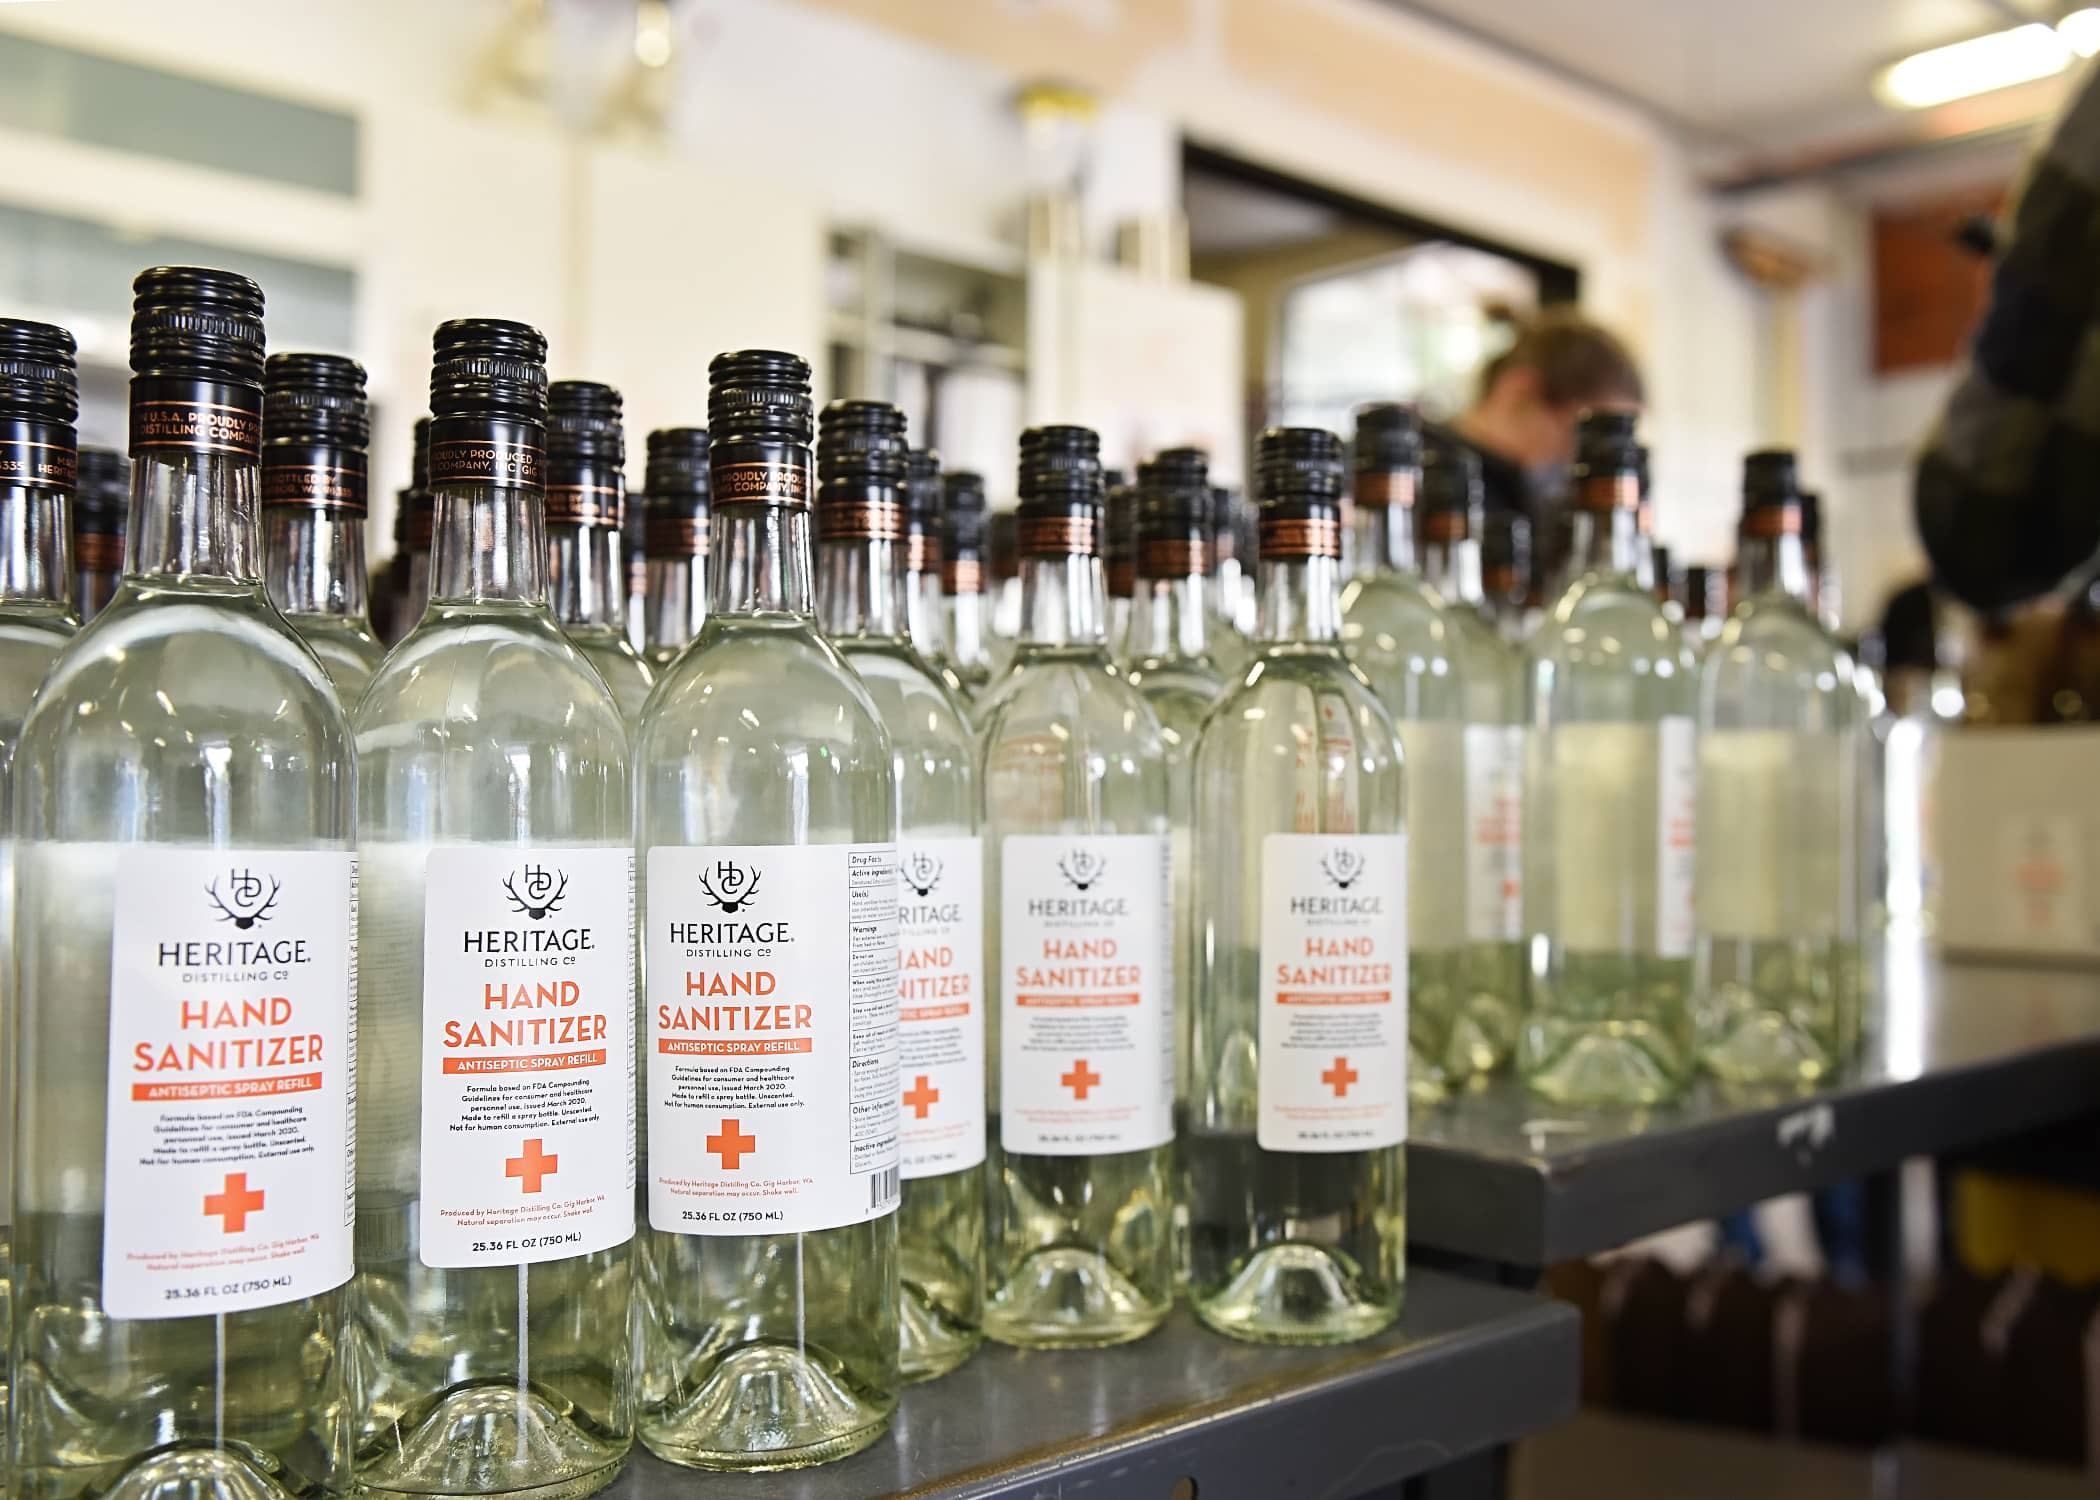 Heritage Distilling Hand Sanitizer available for purchase in tasting rooms